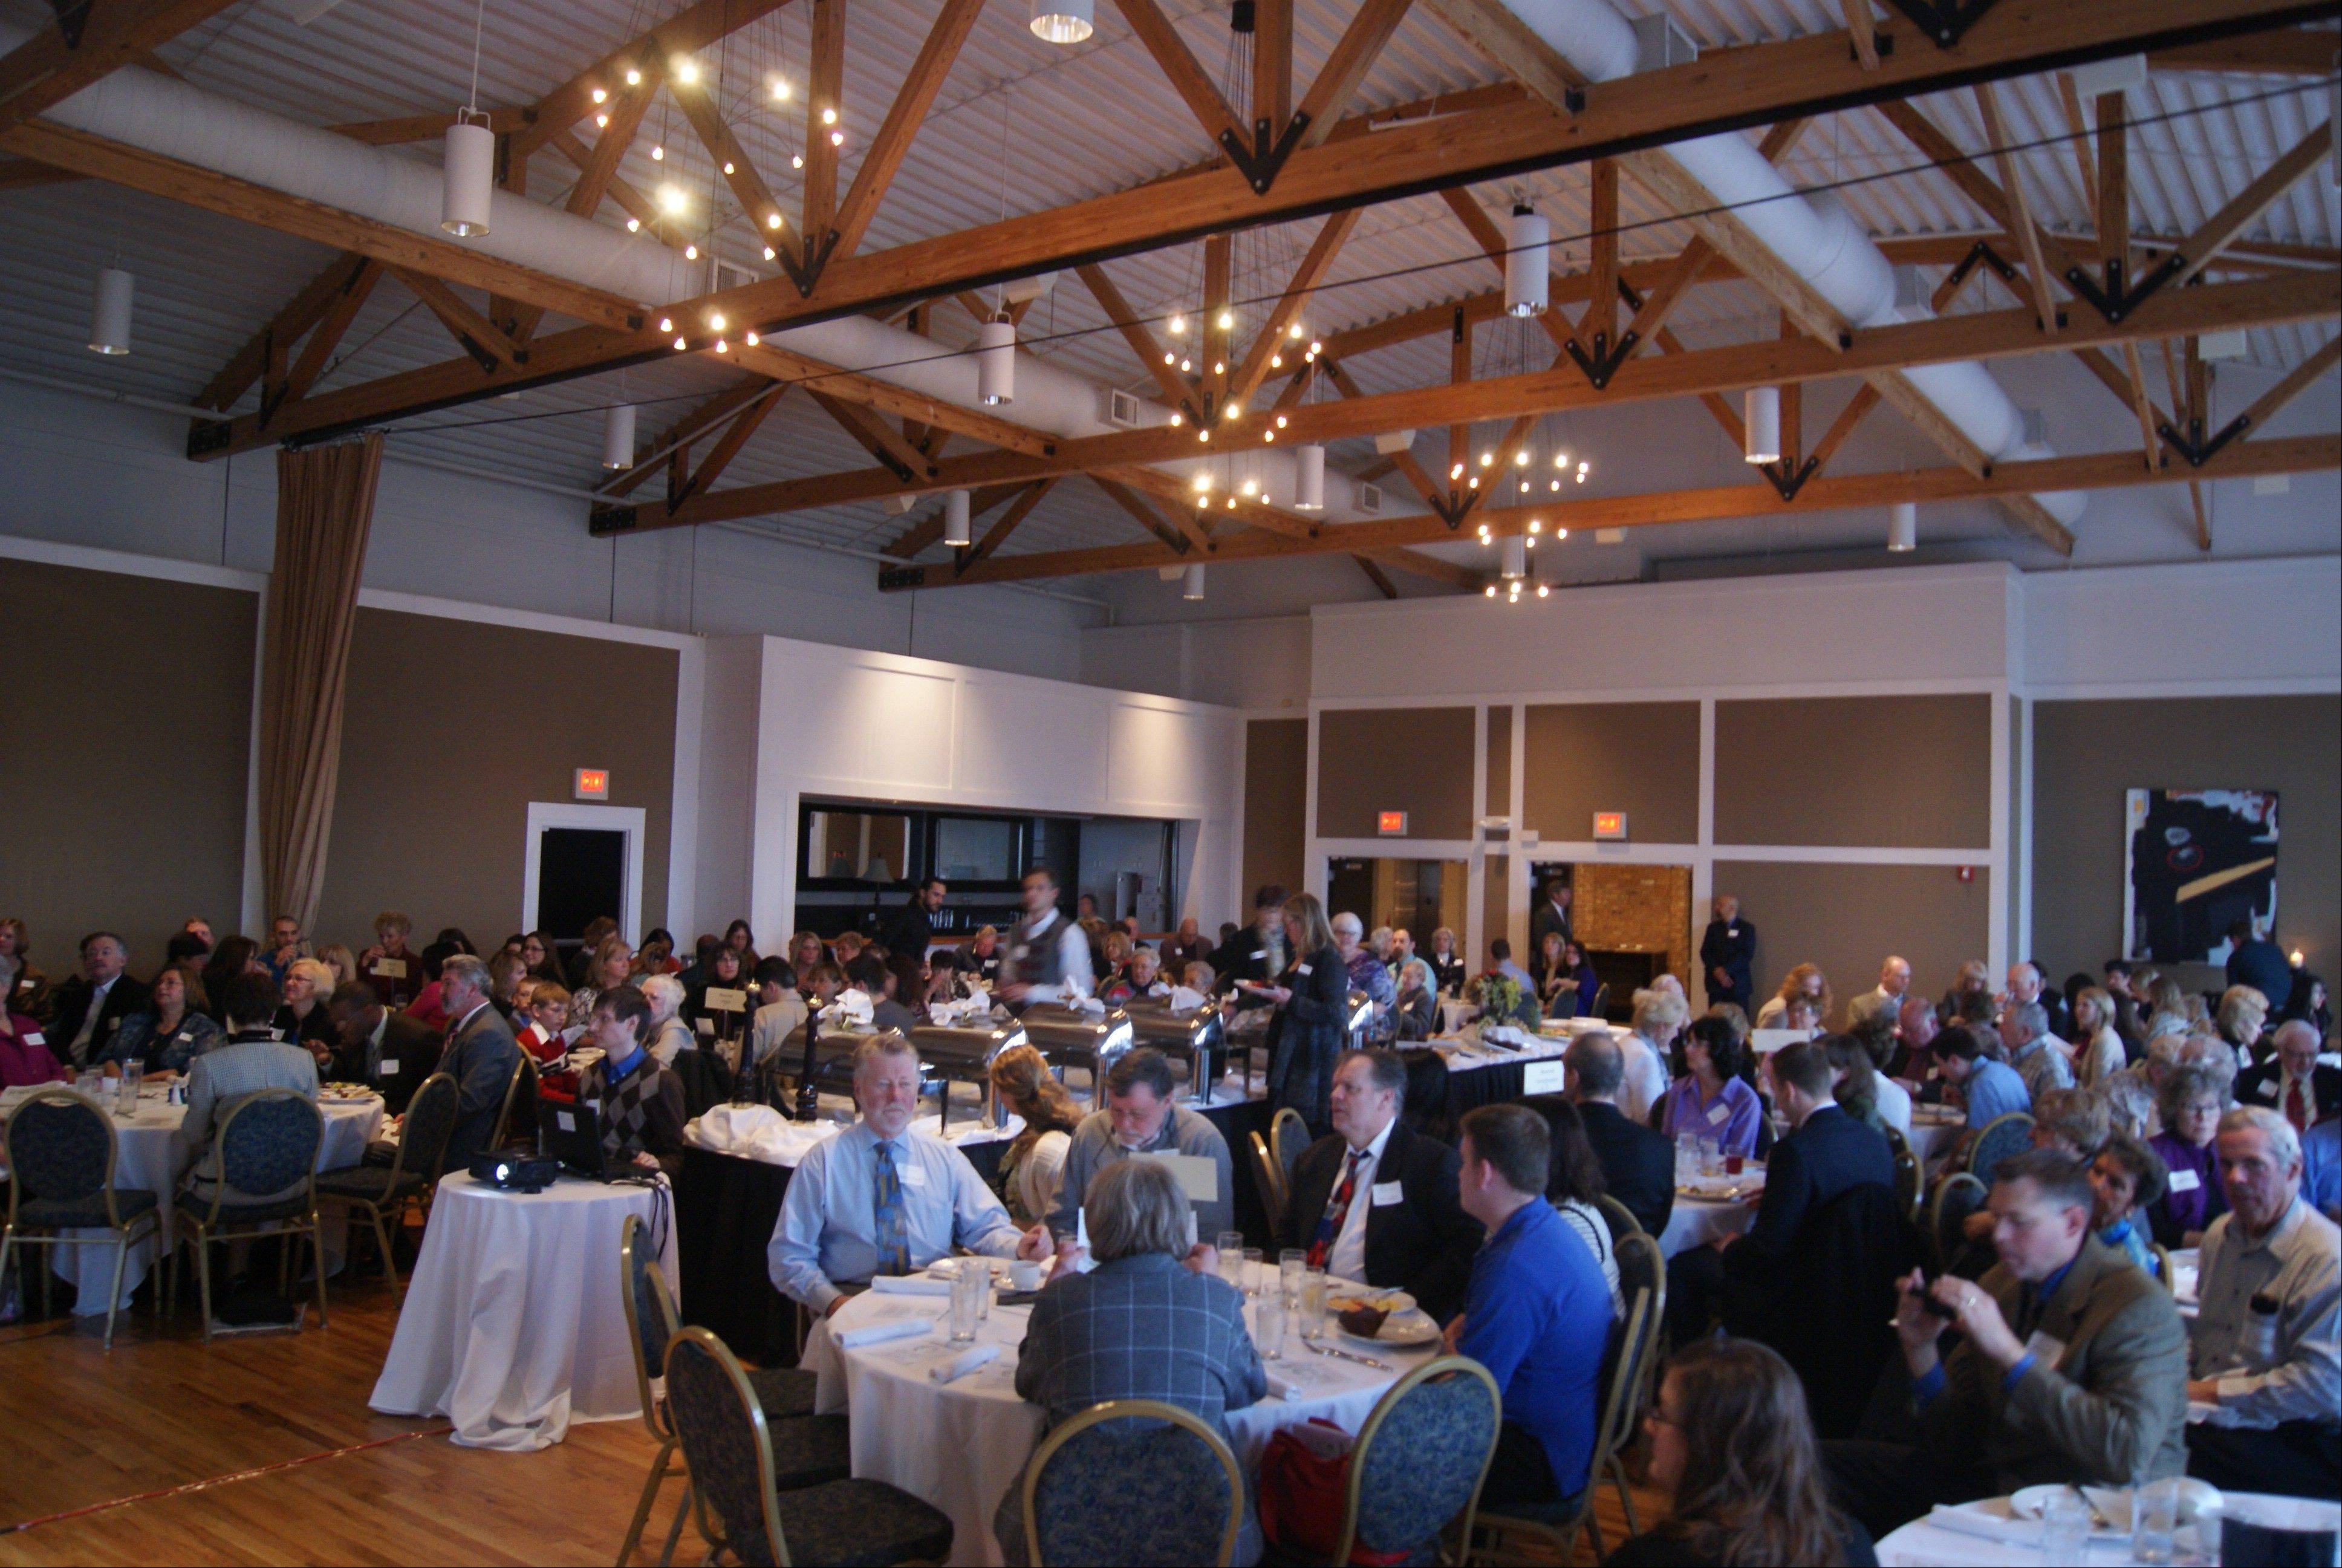 A packed Metropolis Ballroom enjoyed breakfast and the awards program April 11.